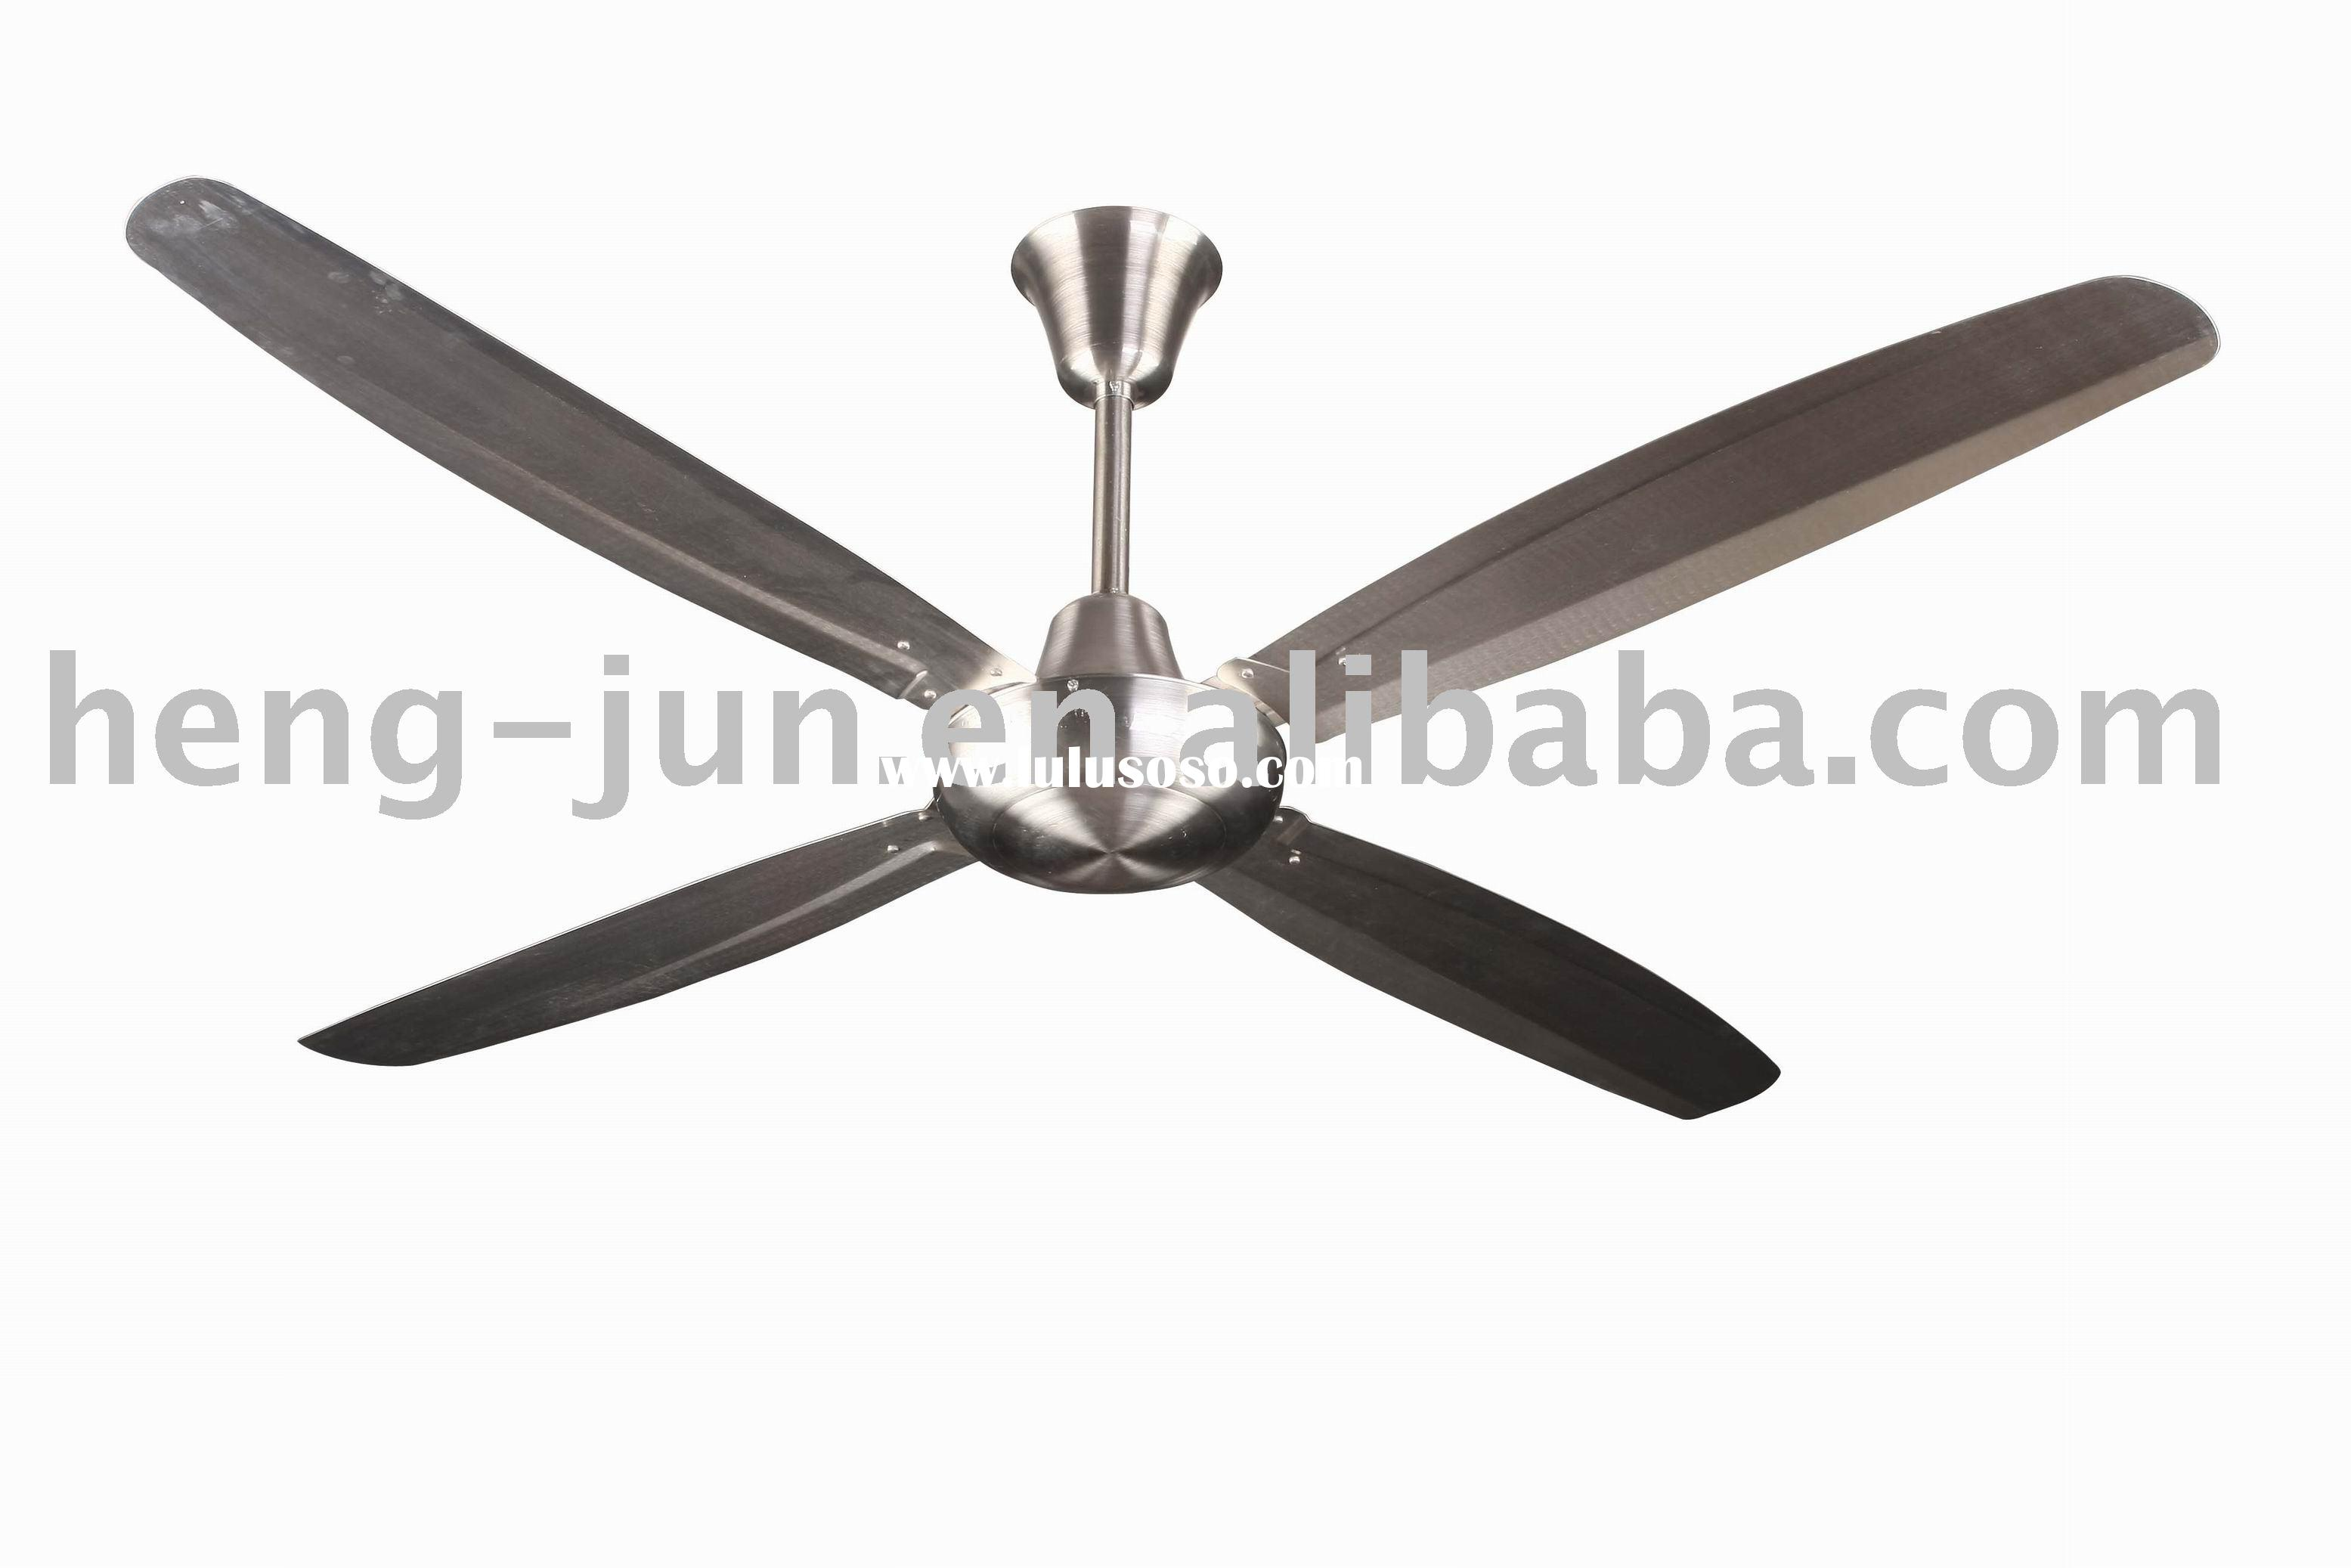 5 Blade Cooling Ceiling Fan For Sale Pricechina Manufacturer Small Electric Manufacturers In Lulusosocom 4 Stainless Steel